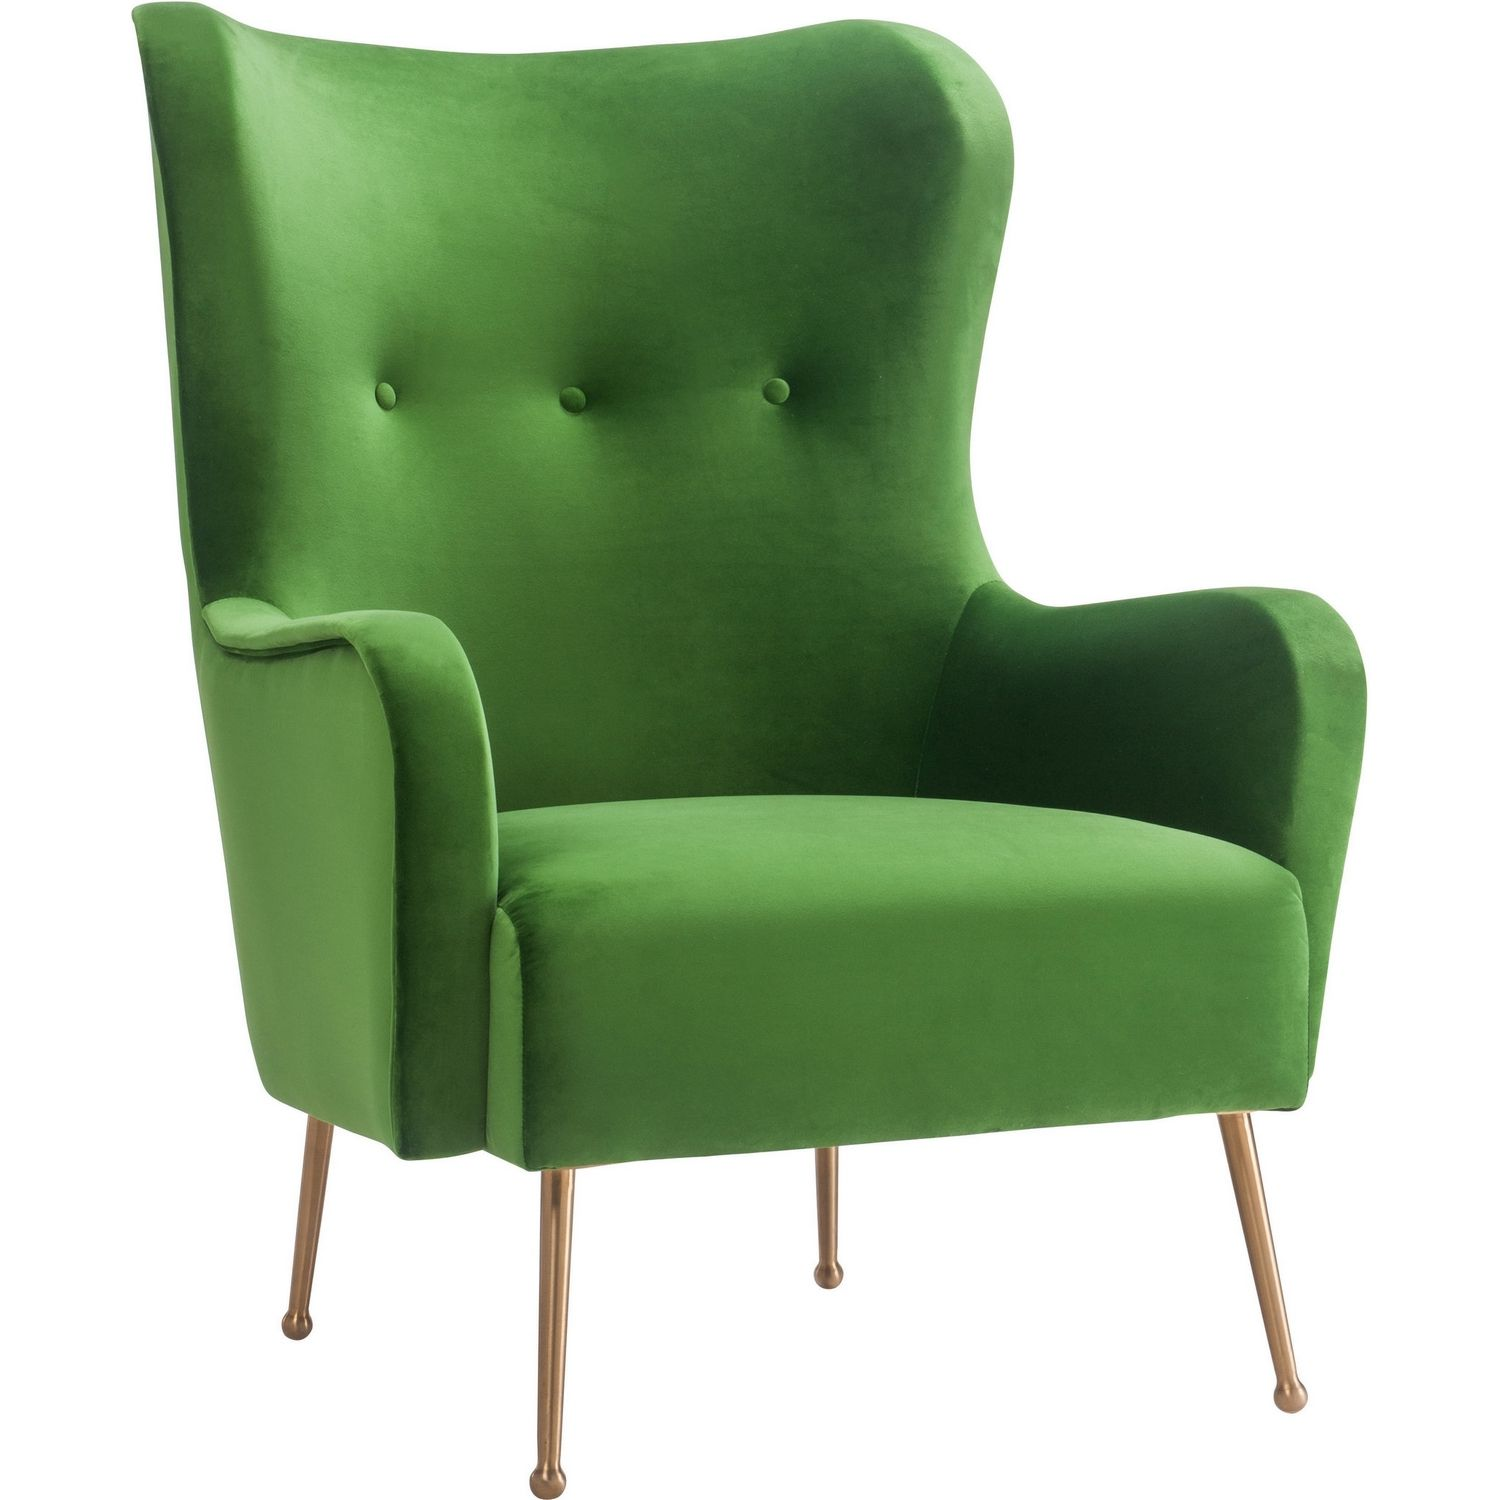 TOV Furniture Ethan Green Velvet Wing Chair on Gold Stainless